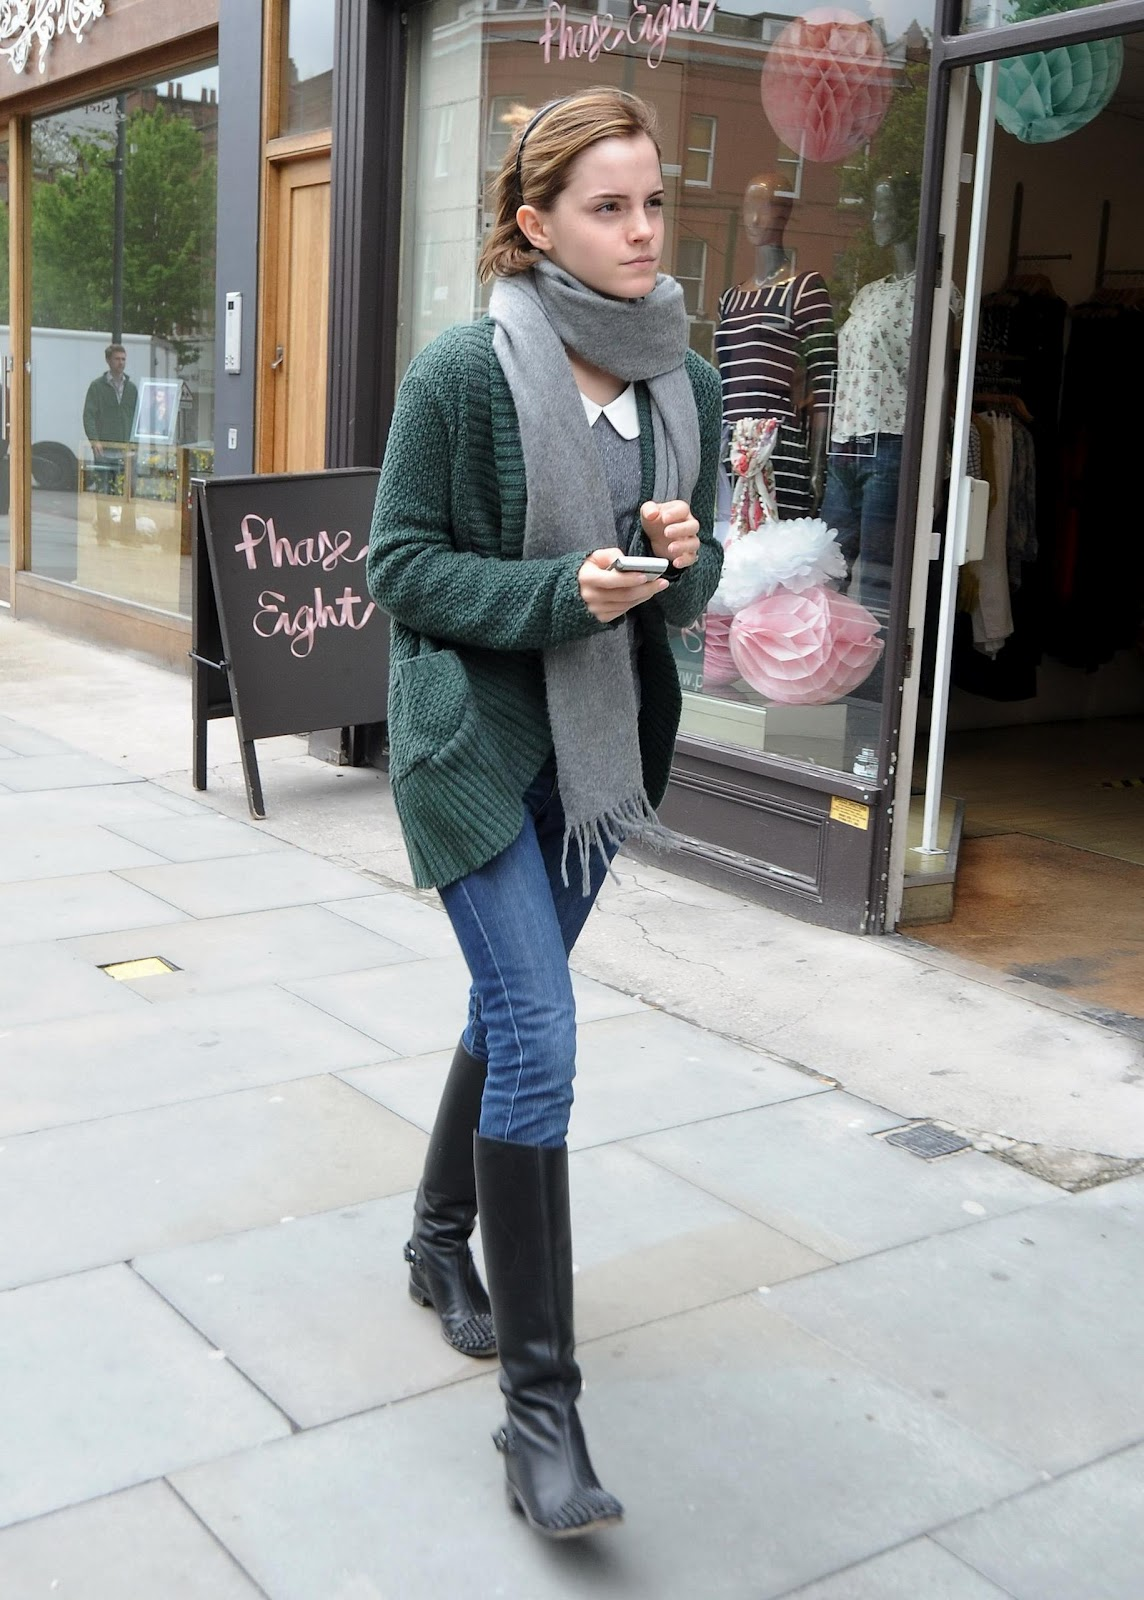 http://2.bp.blogspot.com/-O-lEV-LSALI/UFsrSlXLC1I/AAAAAAAABvA/ePQlz5Ch4Gw/s1600/Out-in-London-May-8-2012-emma-watson-30773596-1831-2560.jpg